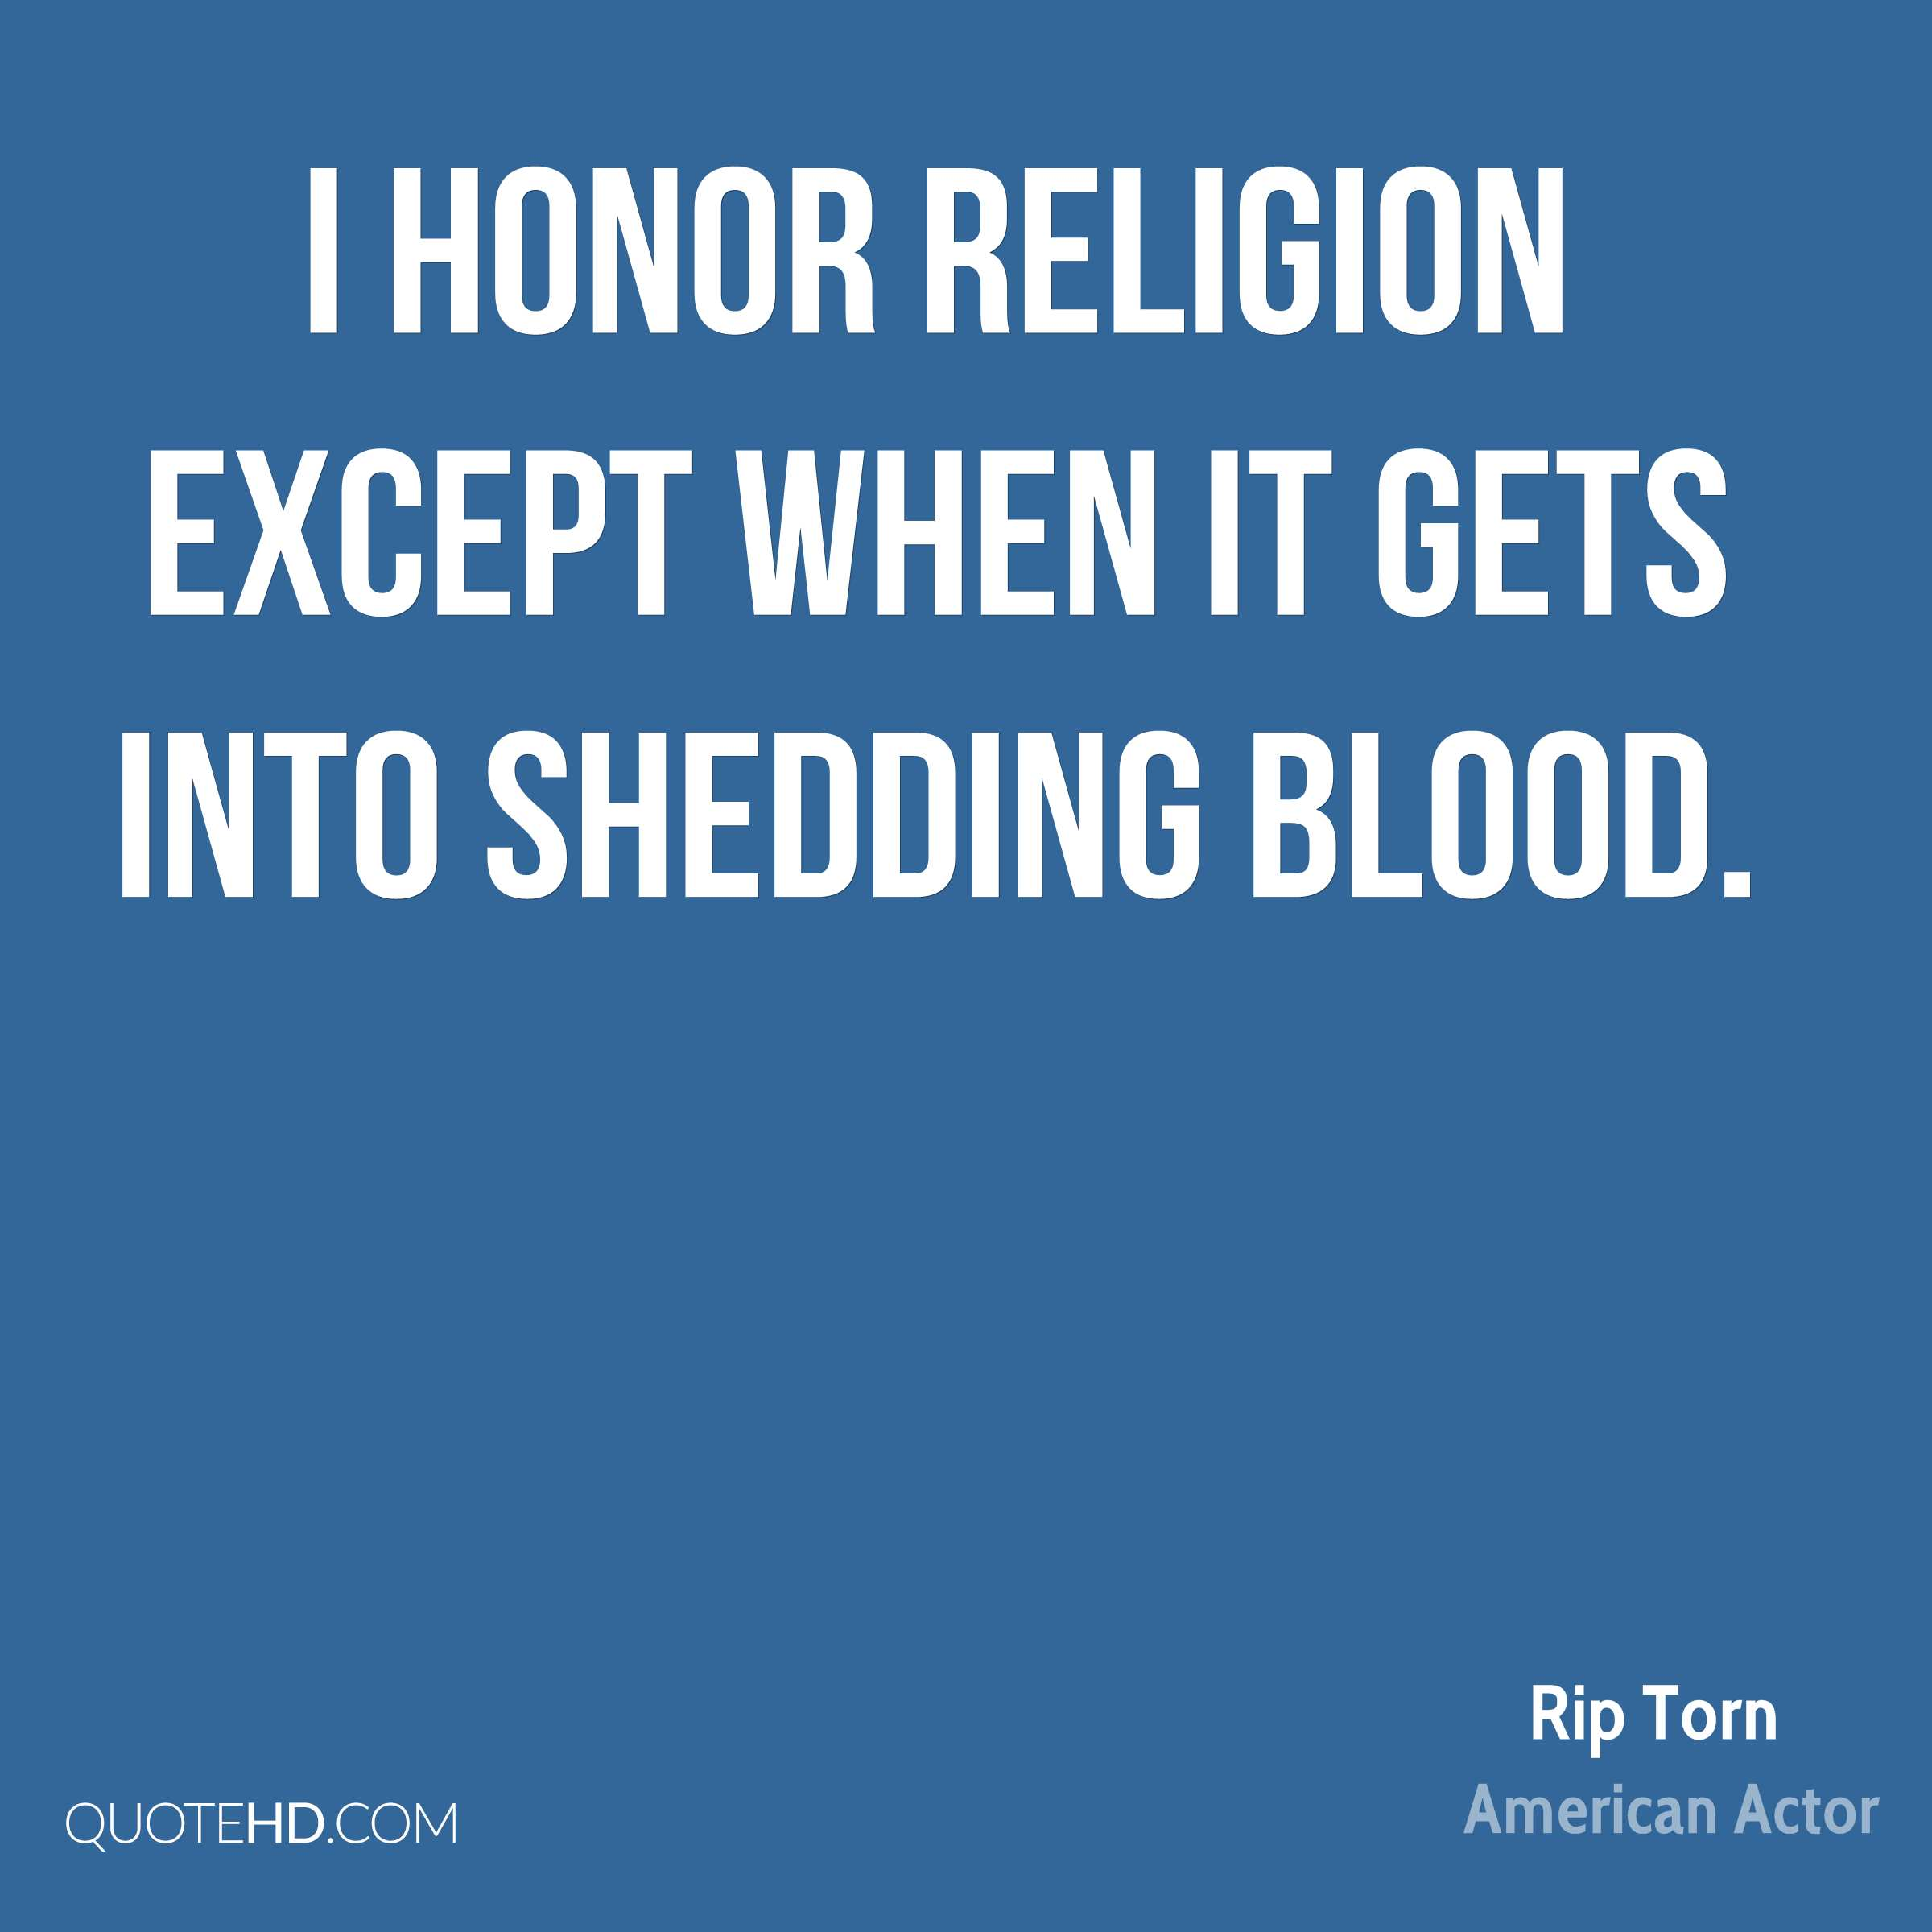 I honor religion except when it gets into shedding blood.